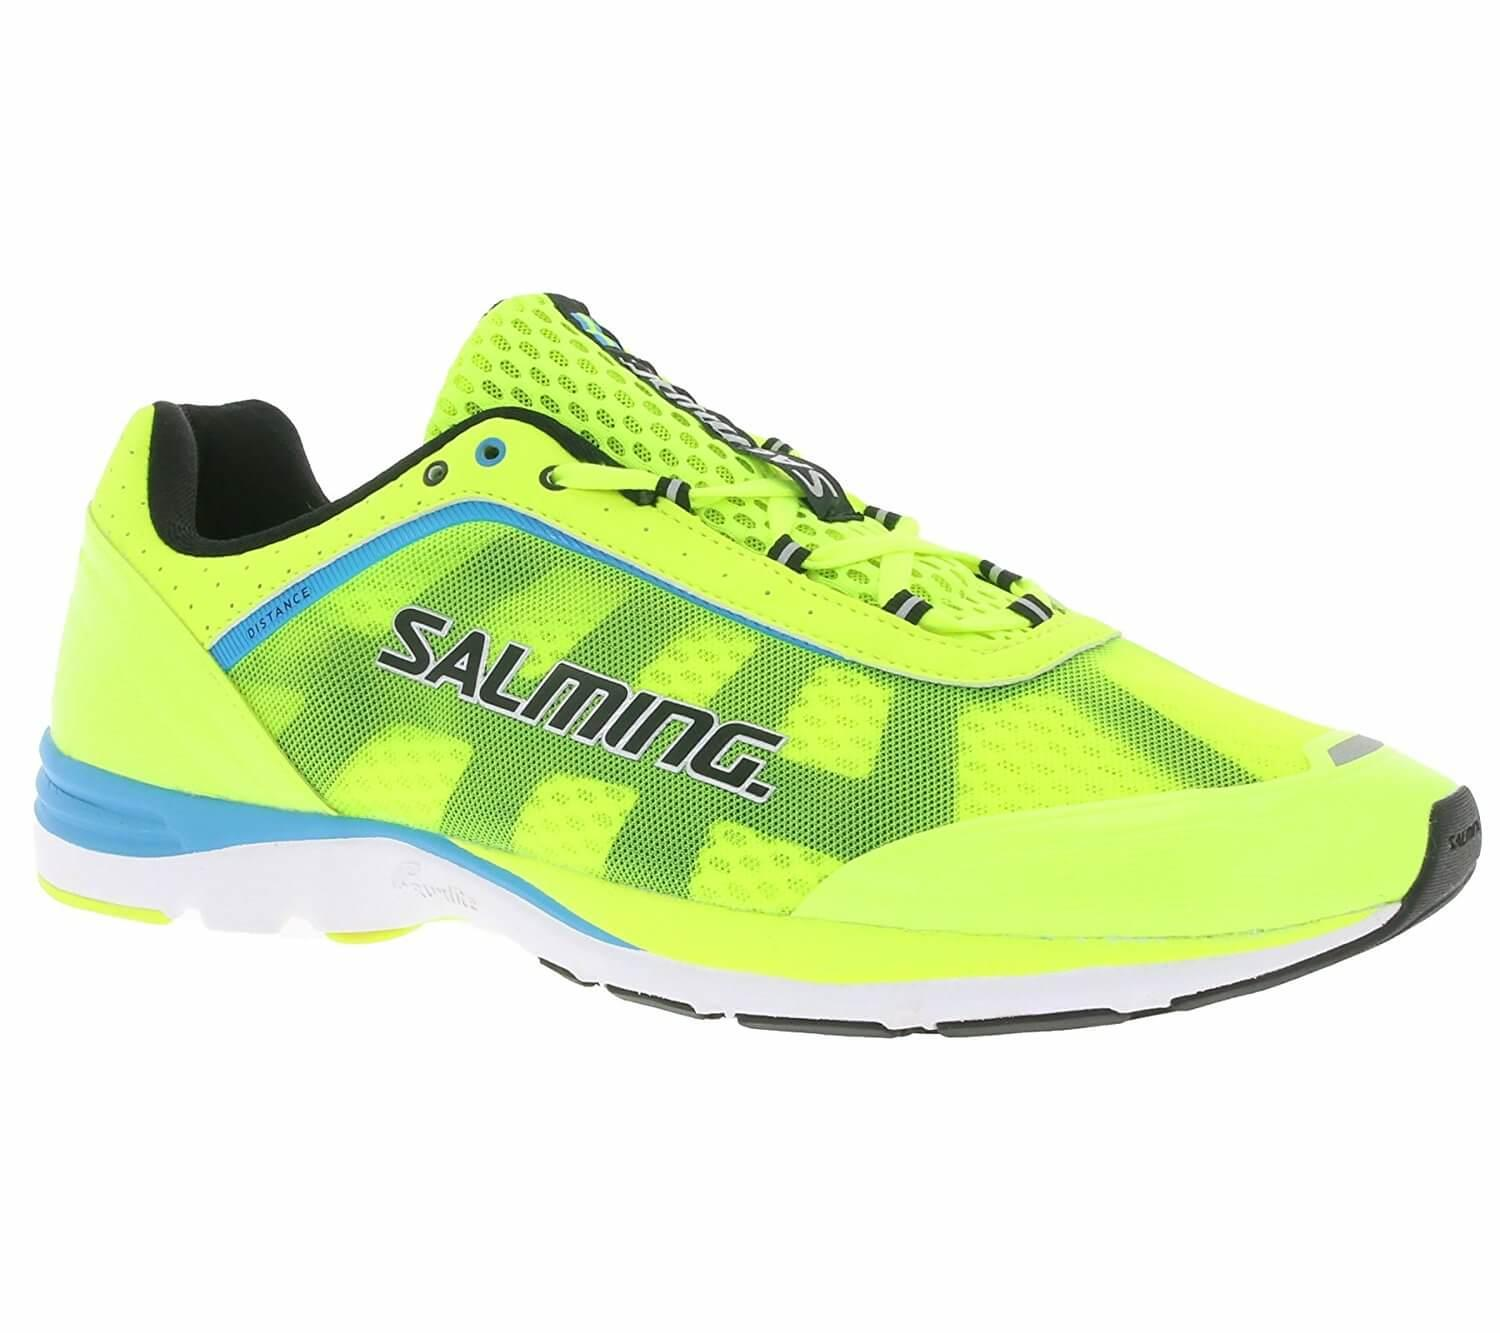 10f67d96aea Best Salming Running Shoes Reviewed in 2019